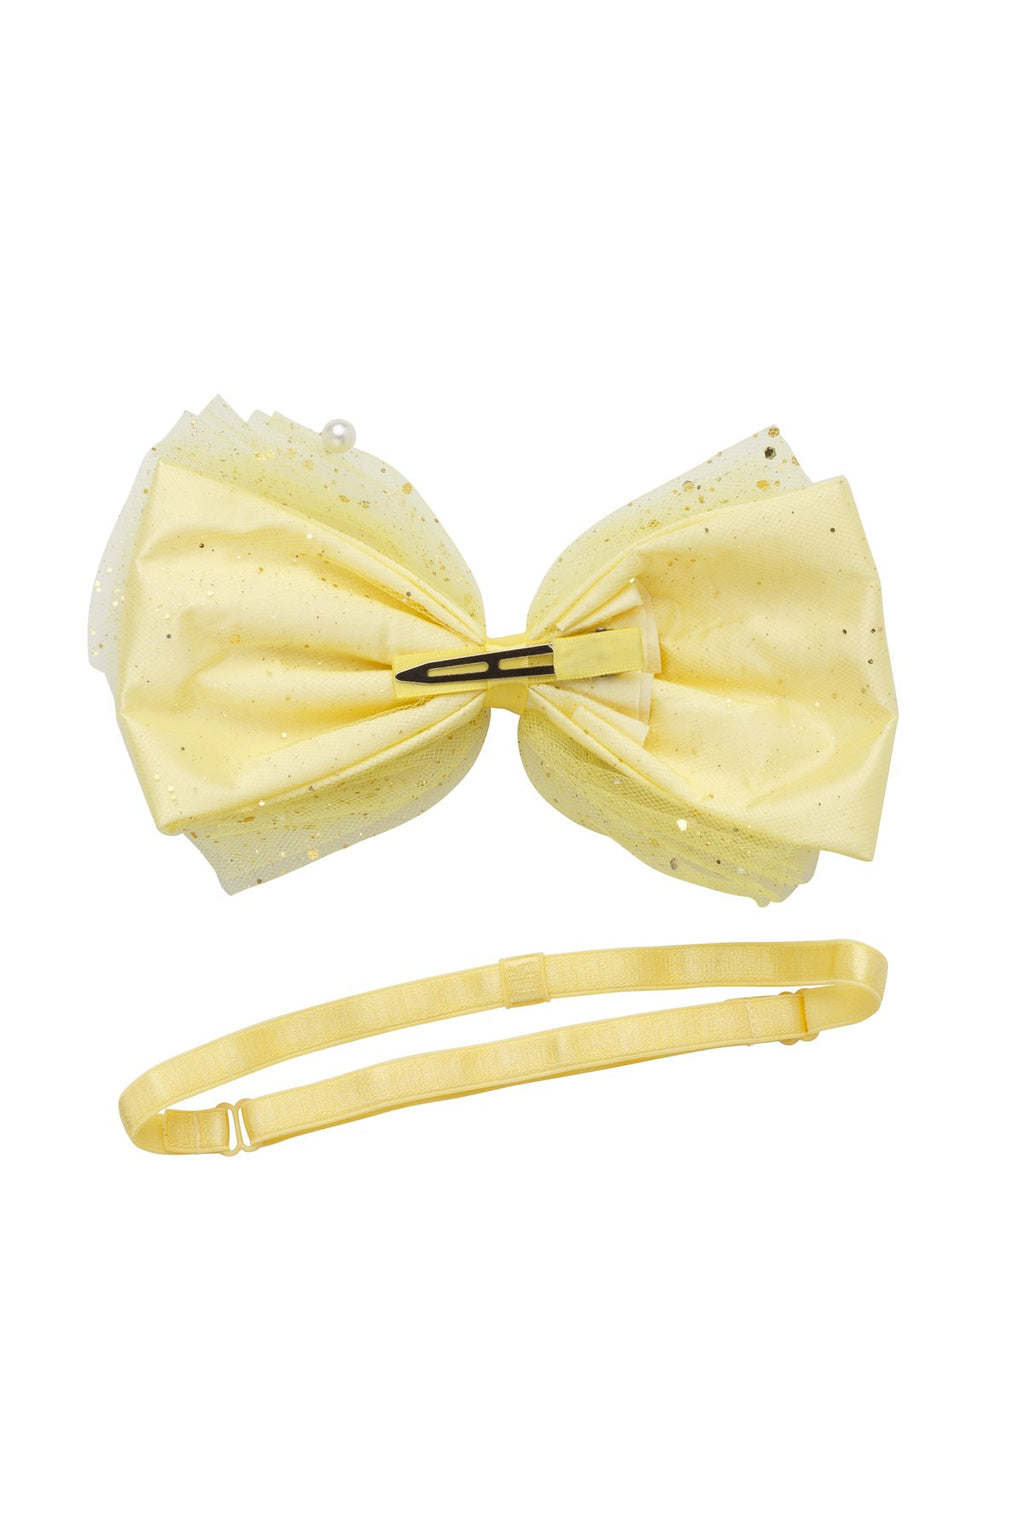 Tulle Pearl Clip/Wrap - Yellow - PROJECT 6, modest fashion